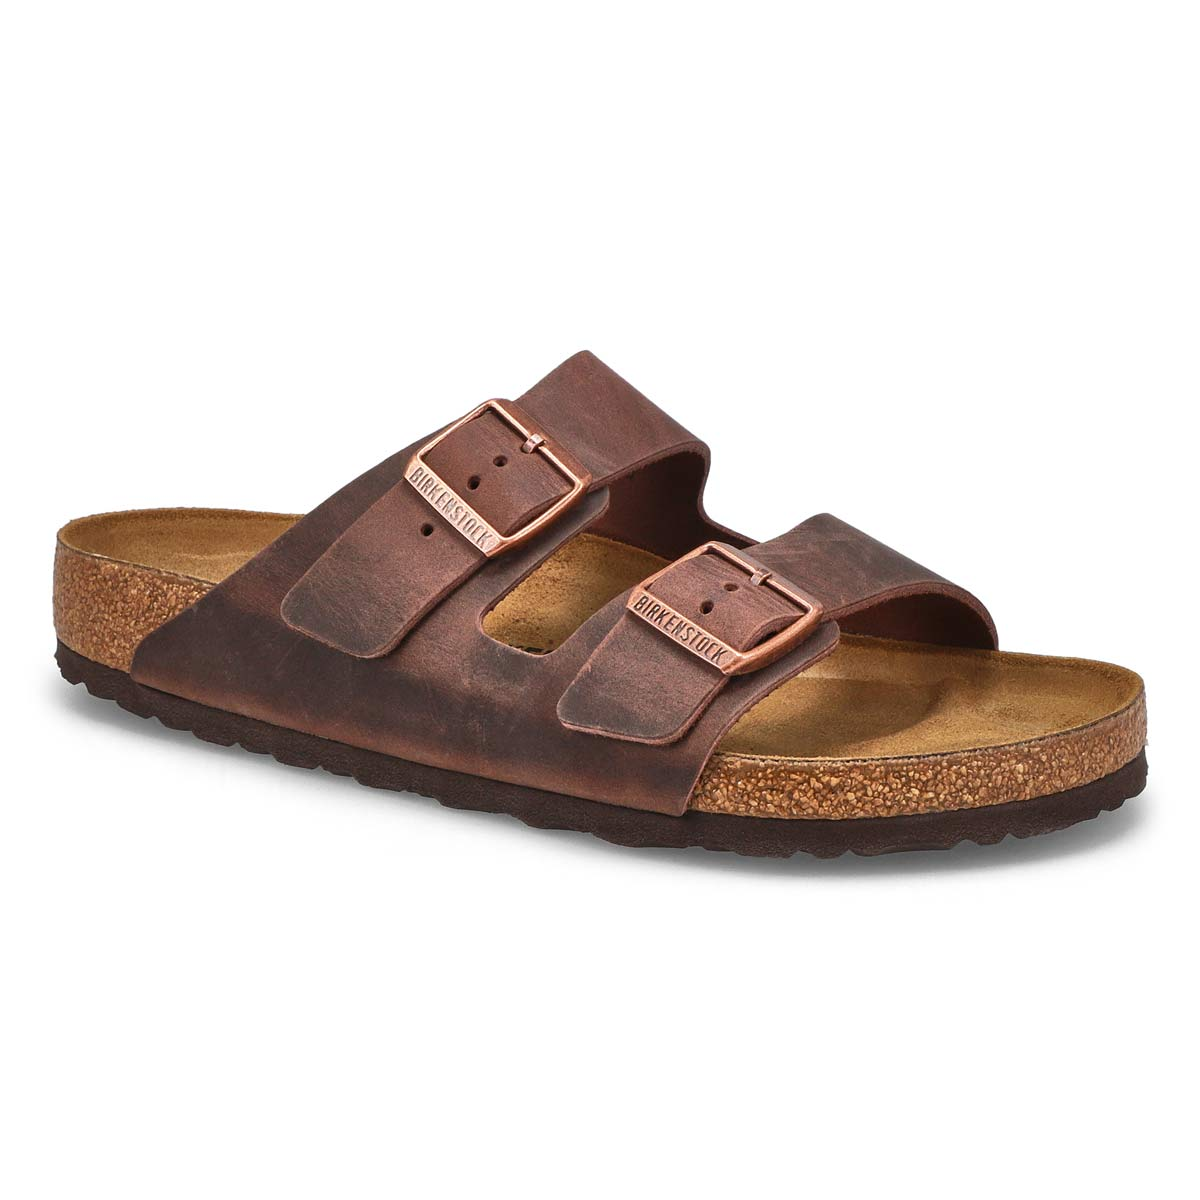 Men's ARIZONA habana 2 strap sandals